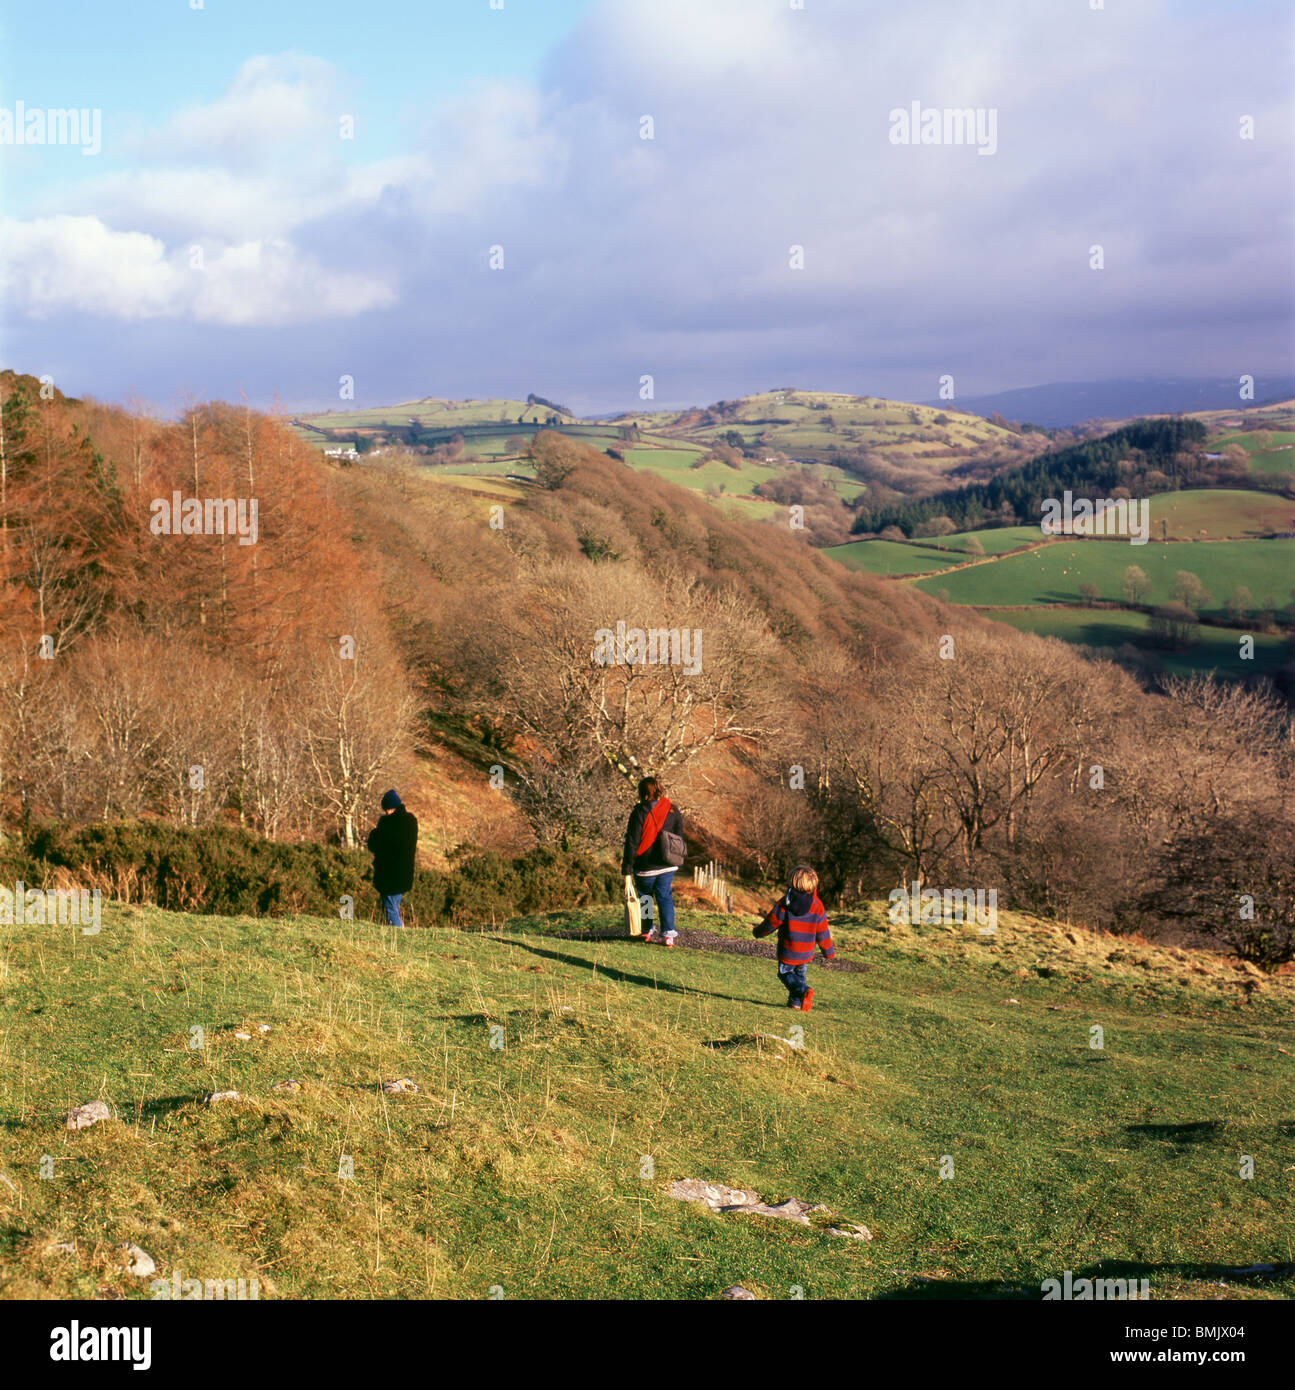 A young family walking down the hill in winter from a visit to Carreg Cennan Castle, Trapp, Wales, UK - Stock Image